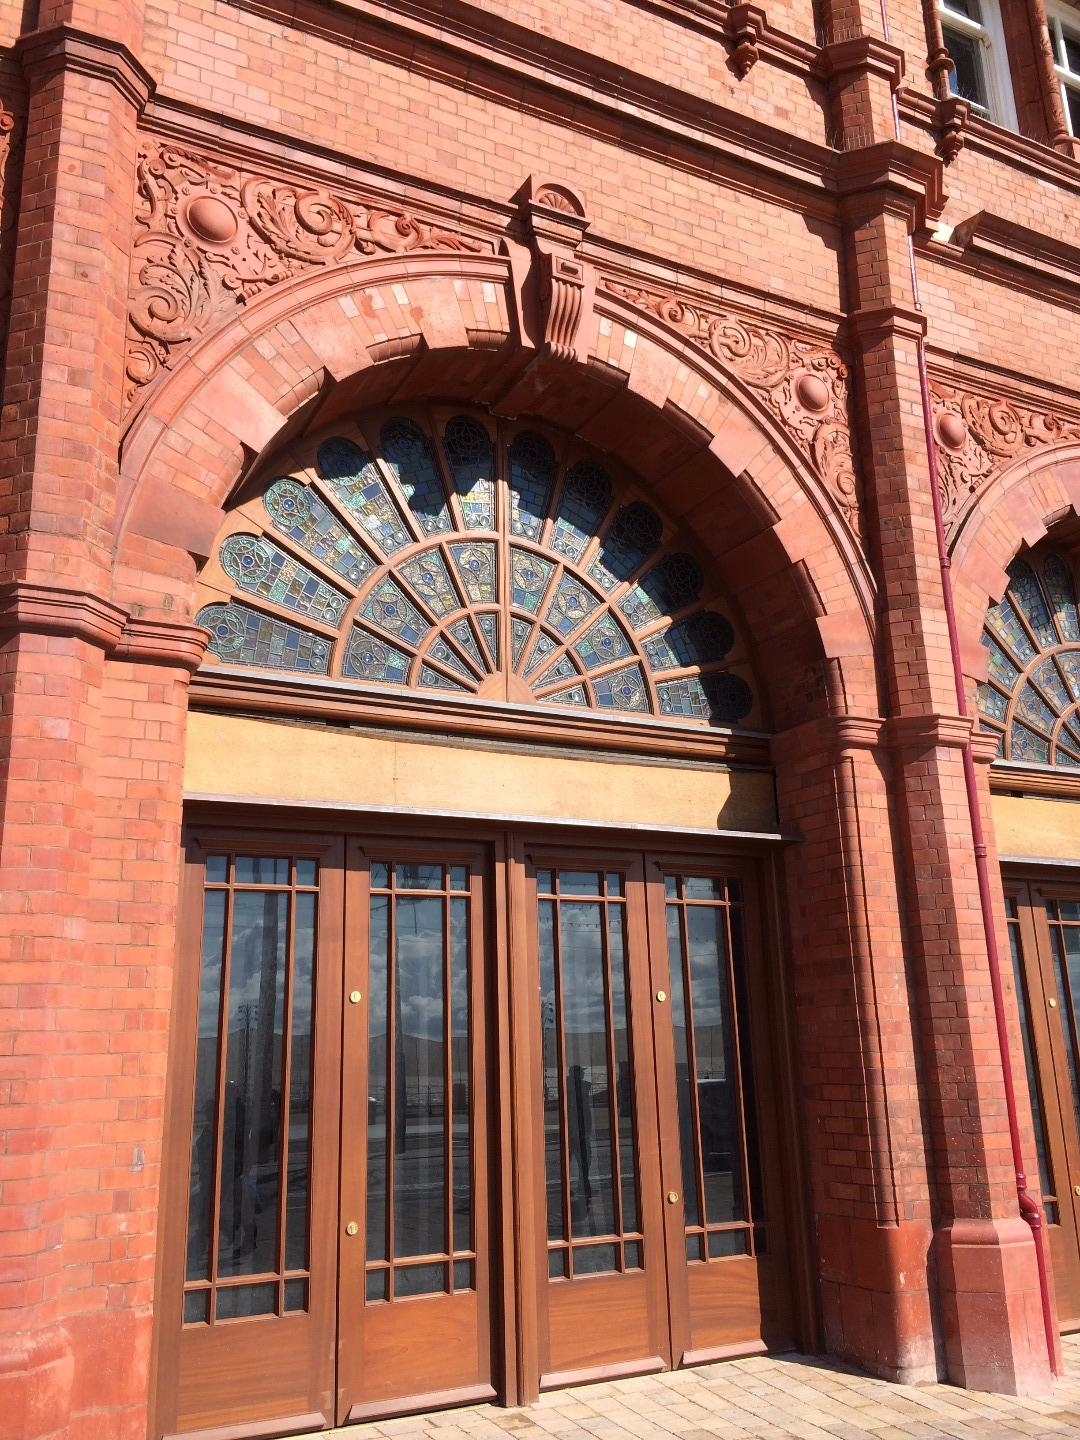 Restored stained glass arch on the front of Blackpool Tower